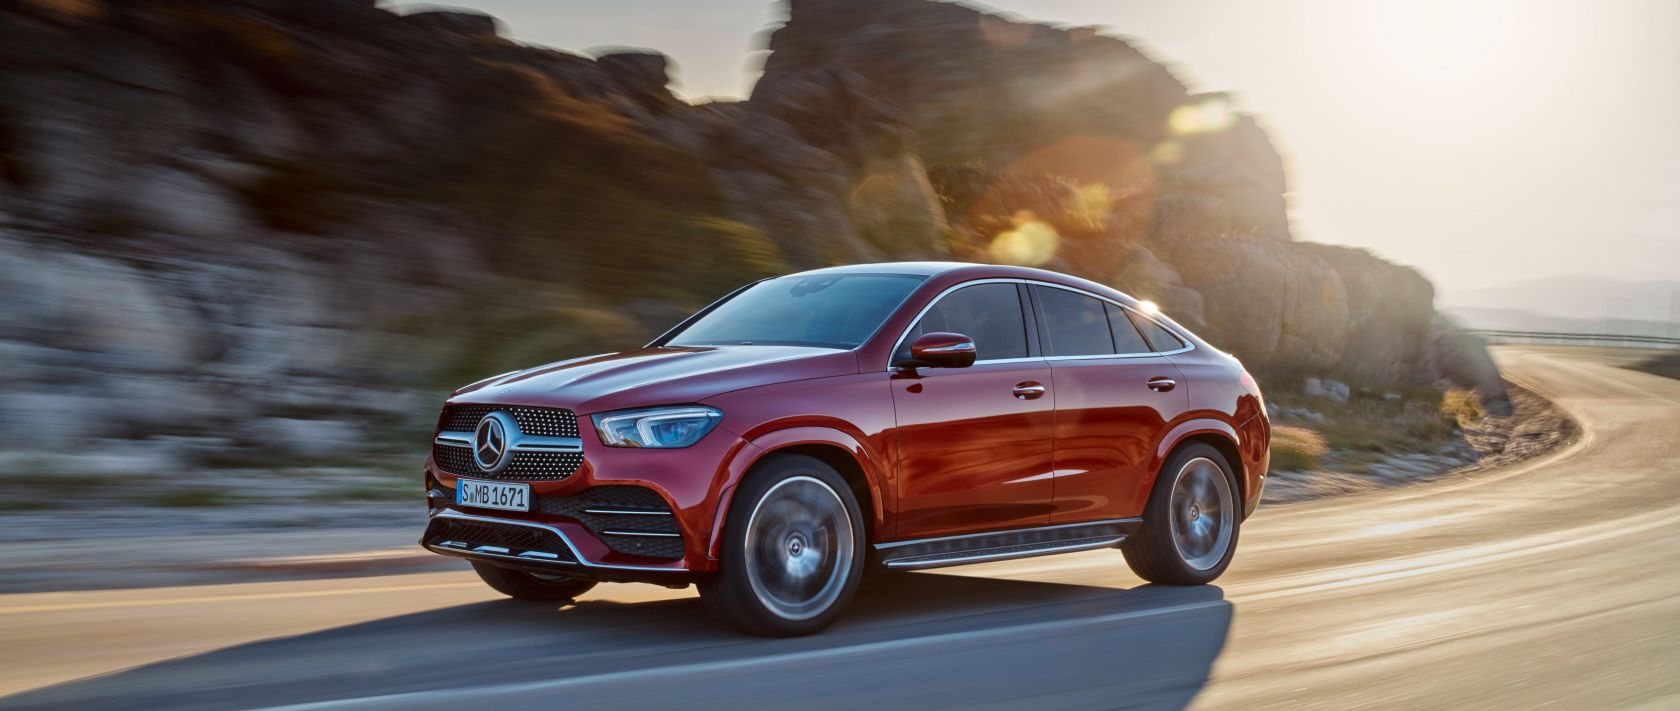 The new 2020 Mercedes-Benz GLE Coupé (C 167) in designo hyacinth red metallic at sunset on a country road.